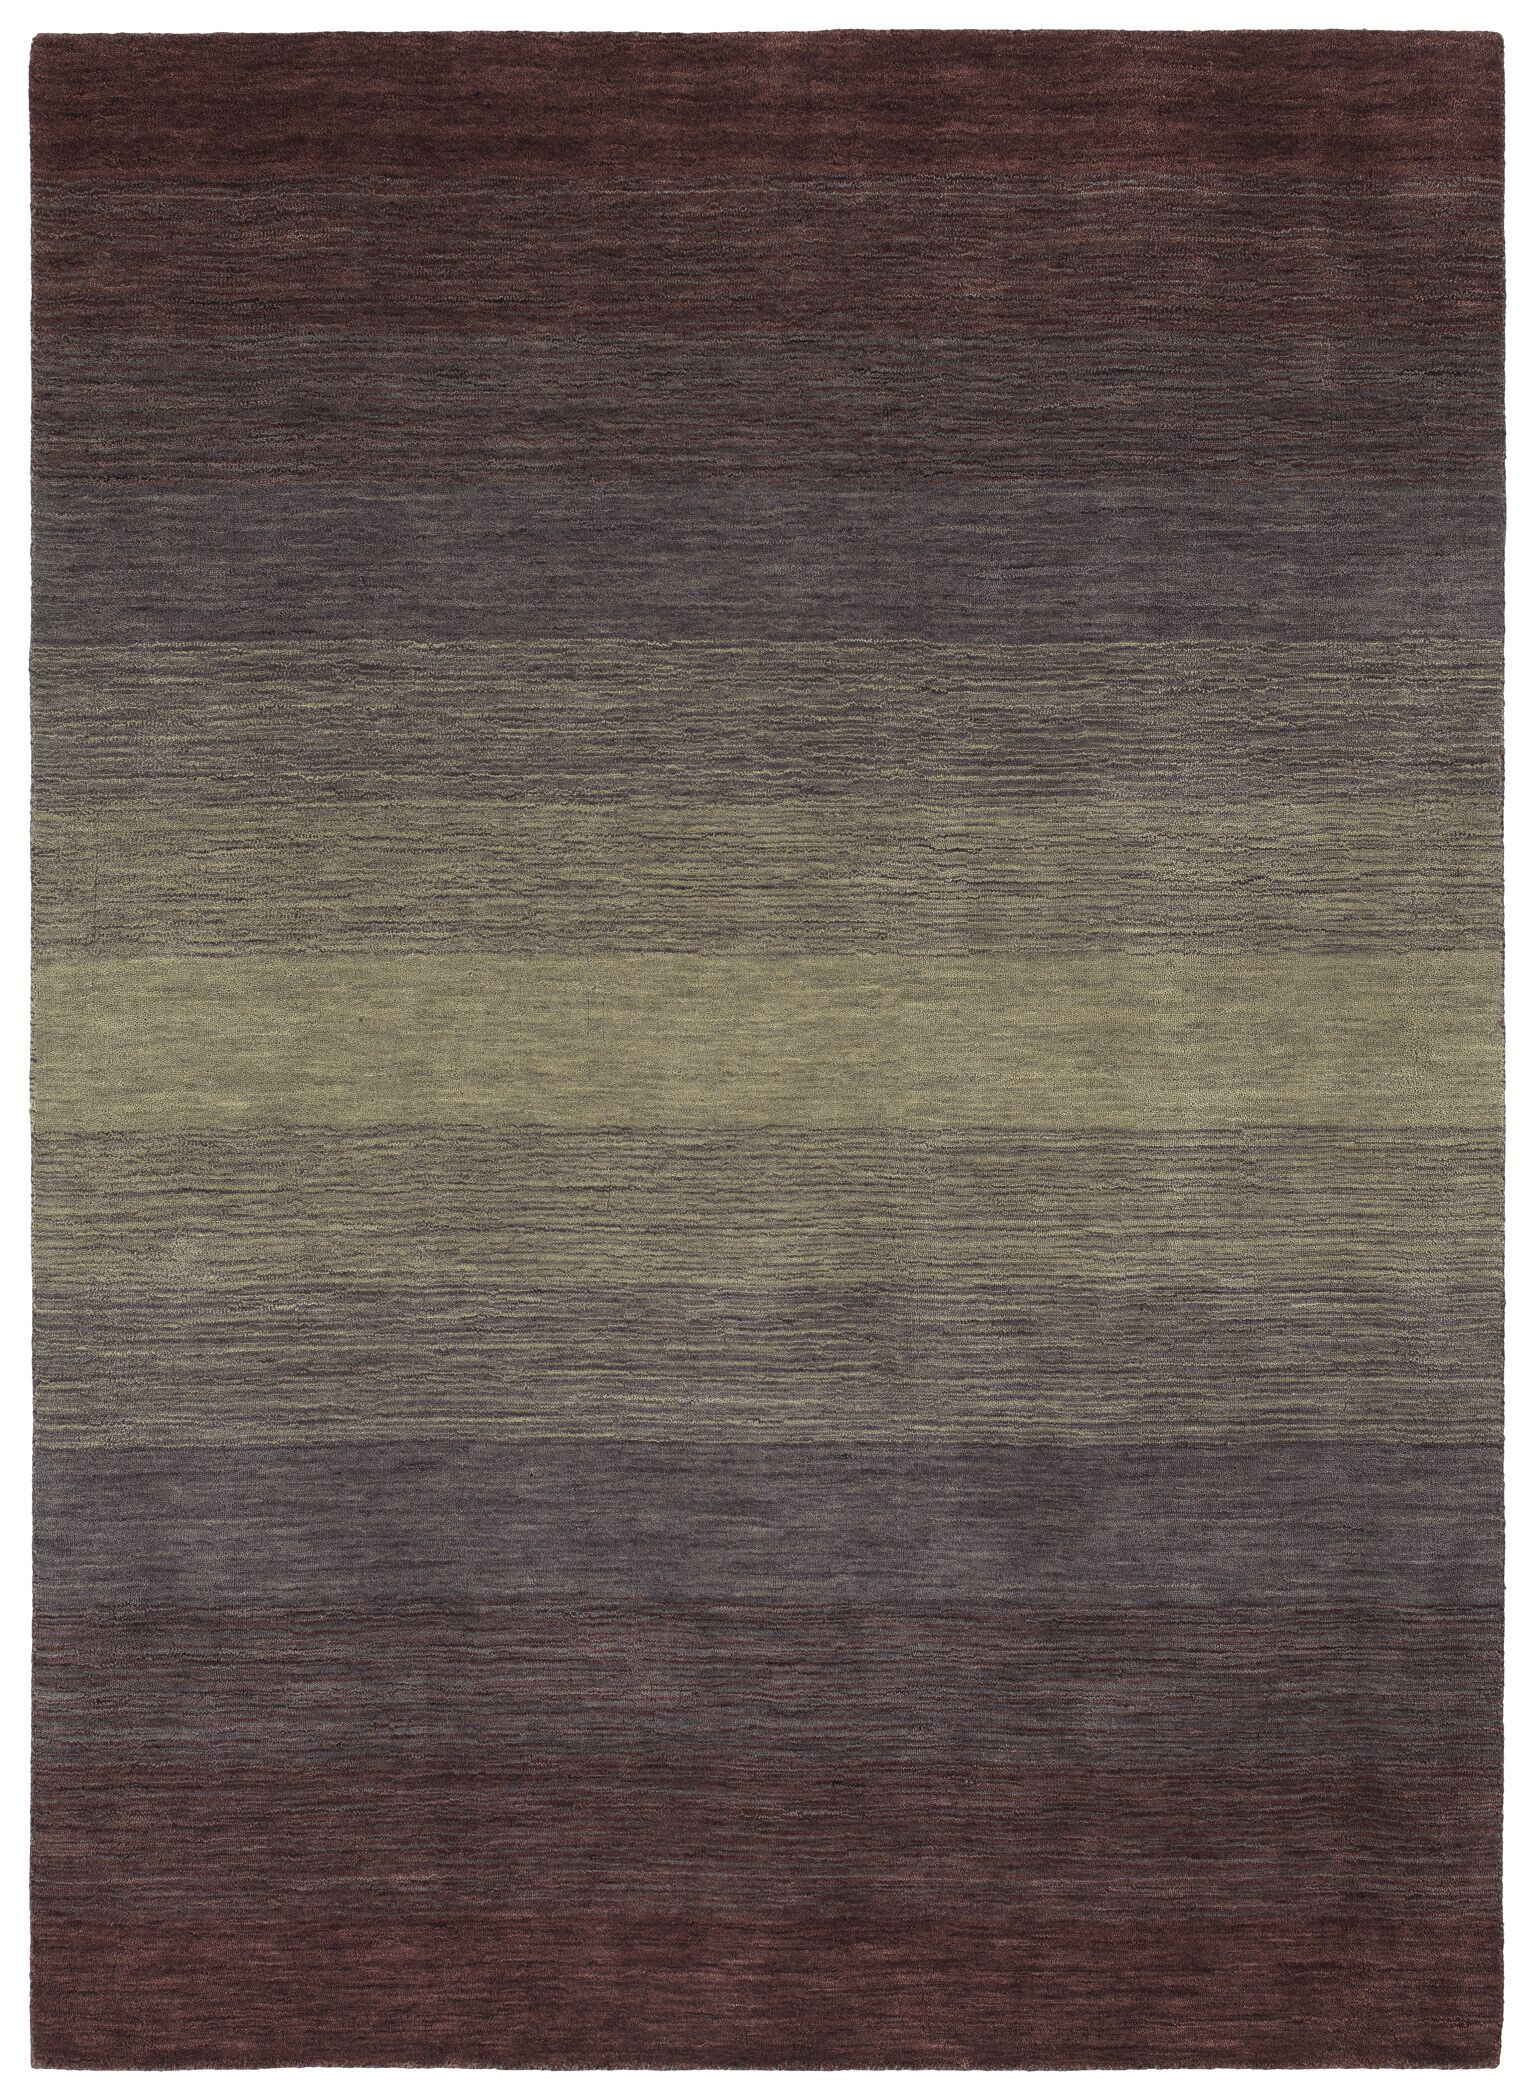 Fortune Hand Tufted Wool Purple Area Rug Rug Size: 5' x 7'6